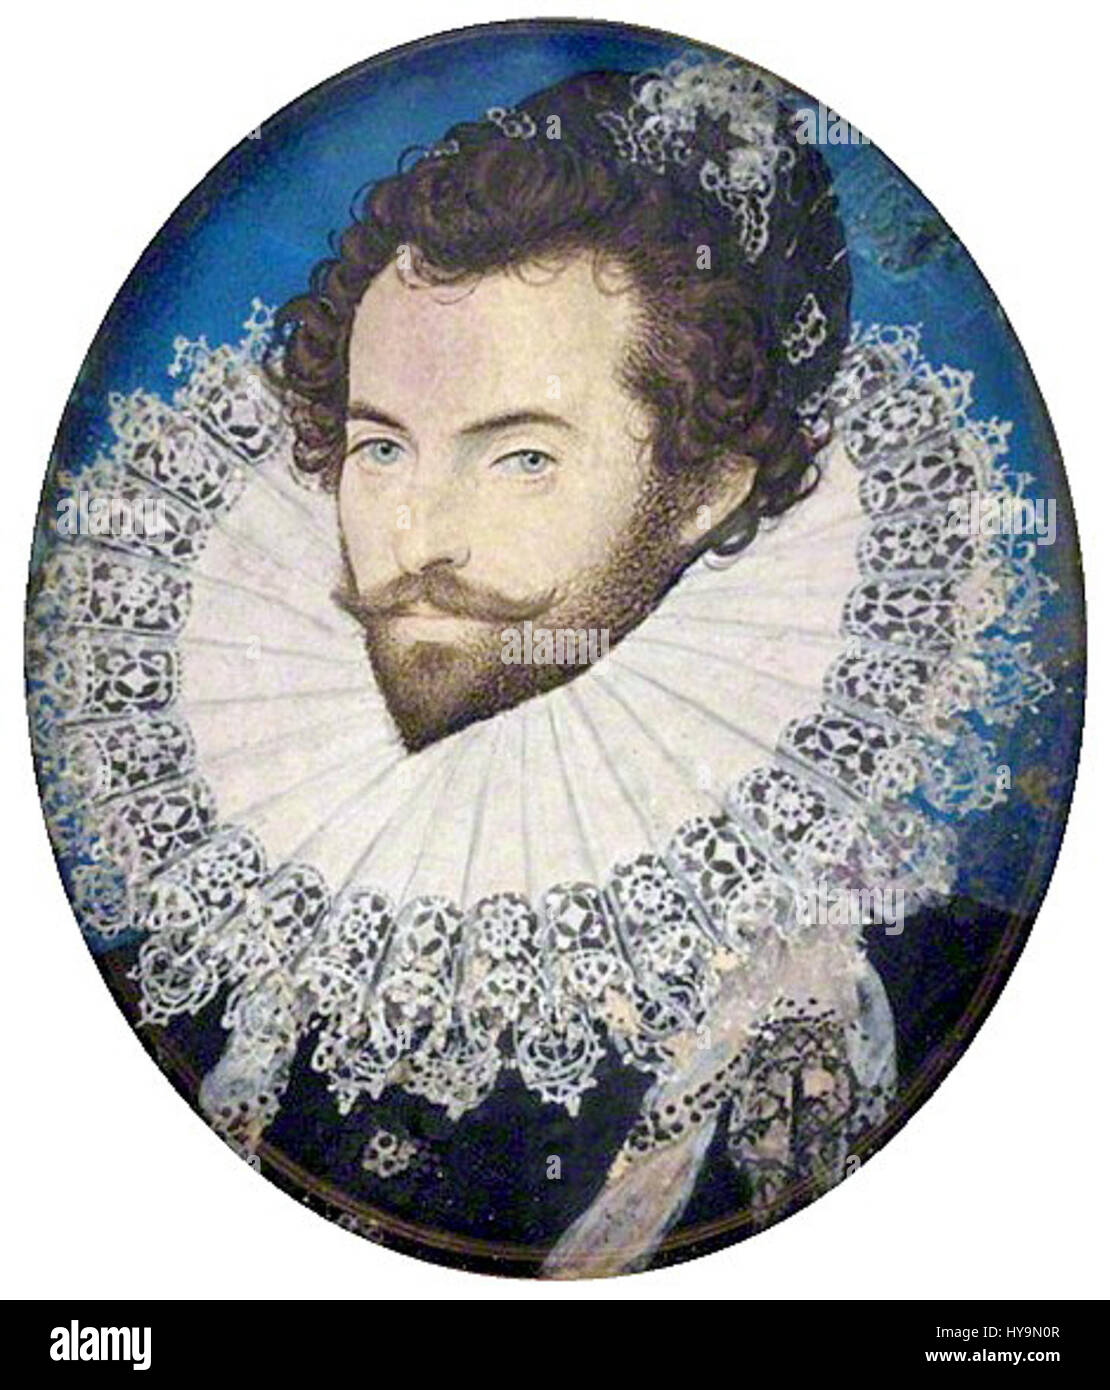 Sir Walter Raleigh - Stock Image